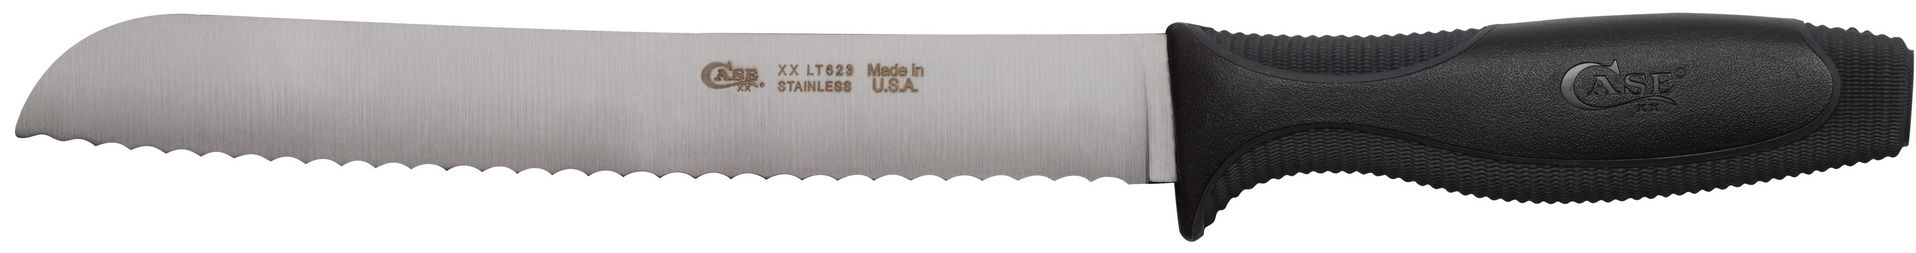 CASE XX KNIFE 31715 BLACK BREAD KNIFE